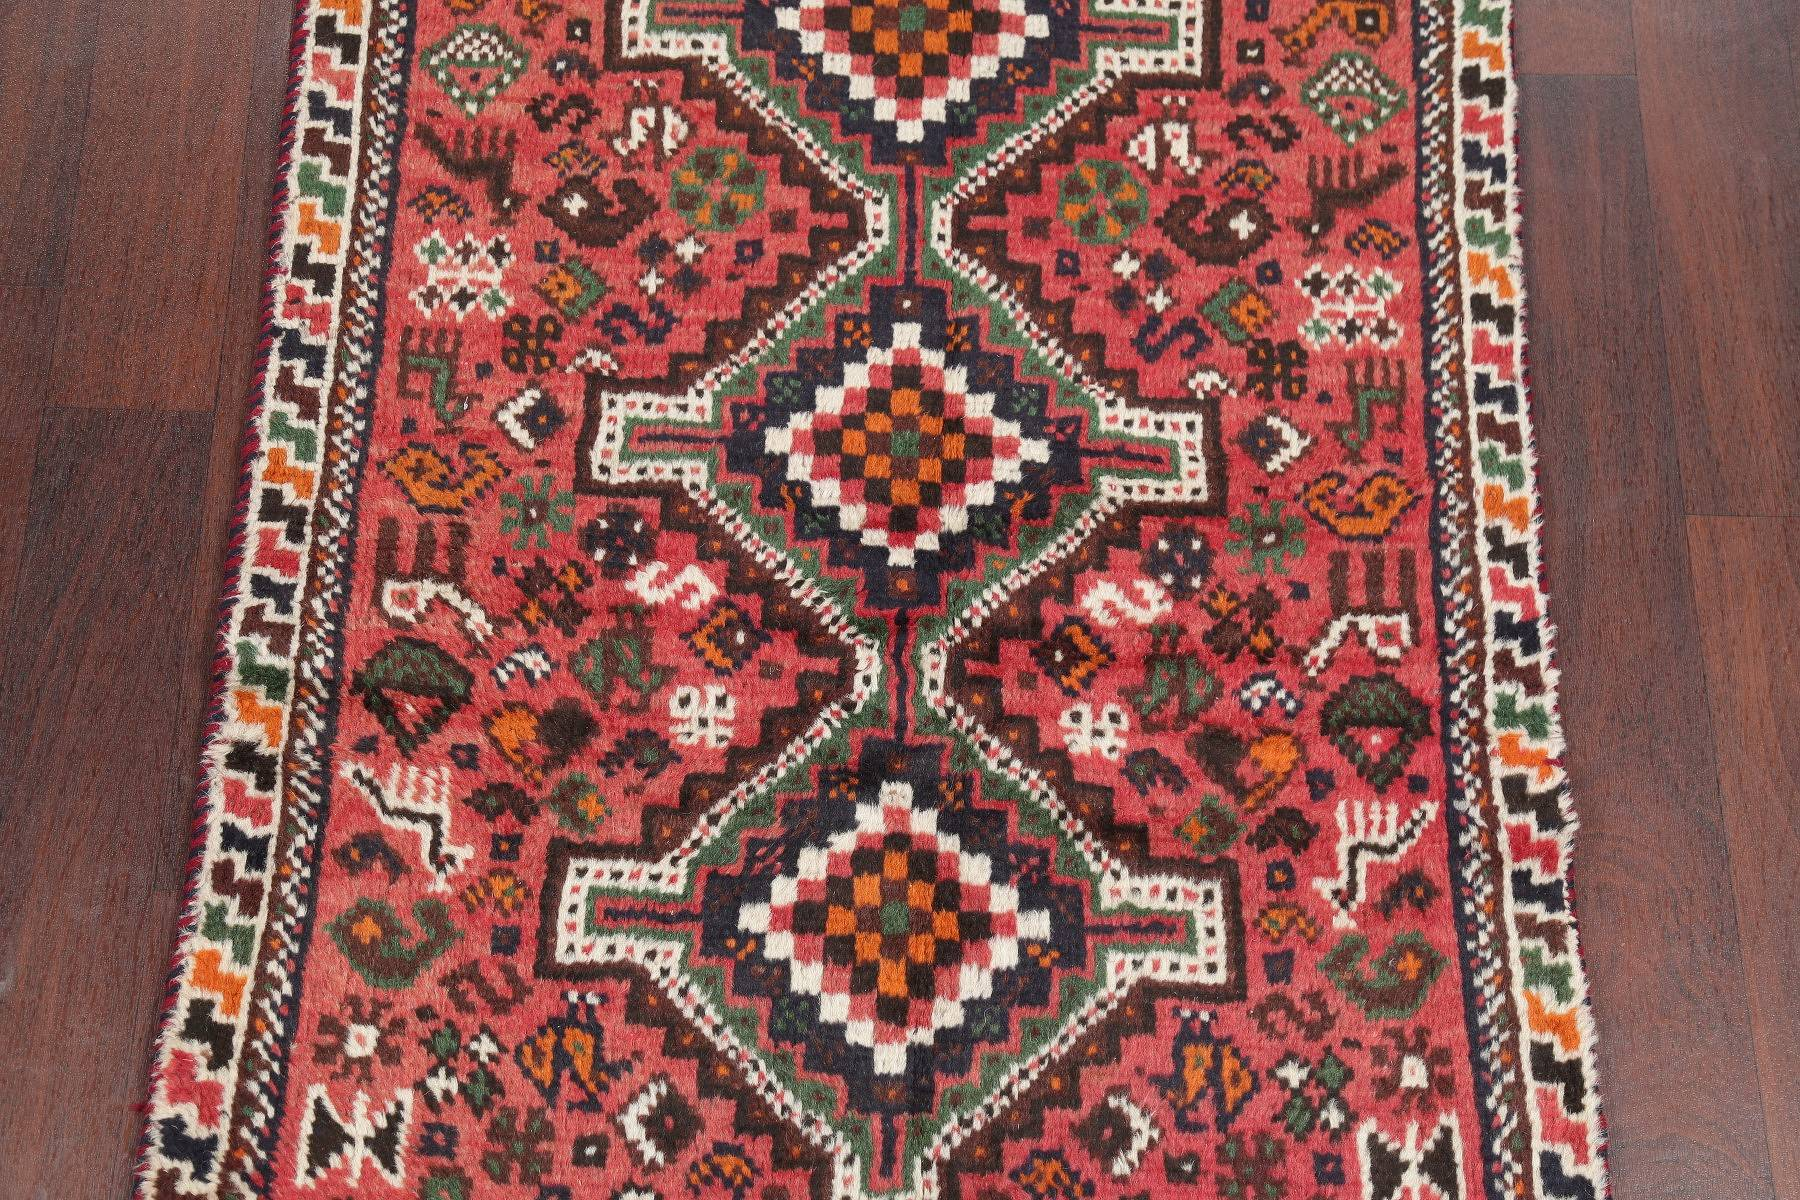 One-of-a-Kind Tribal Shiraz Persian Hand-Knotted 3x5 Wool Rug